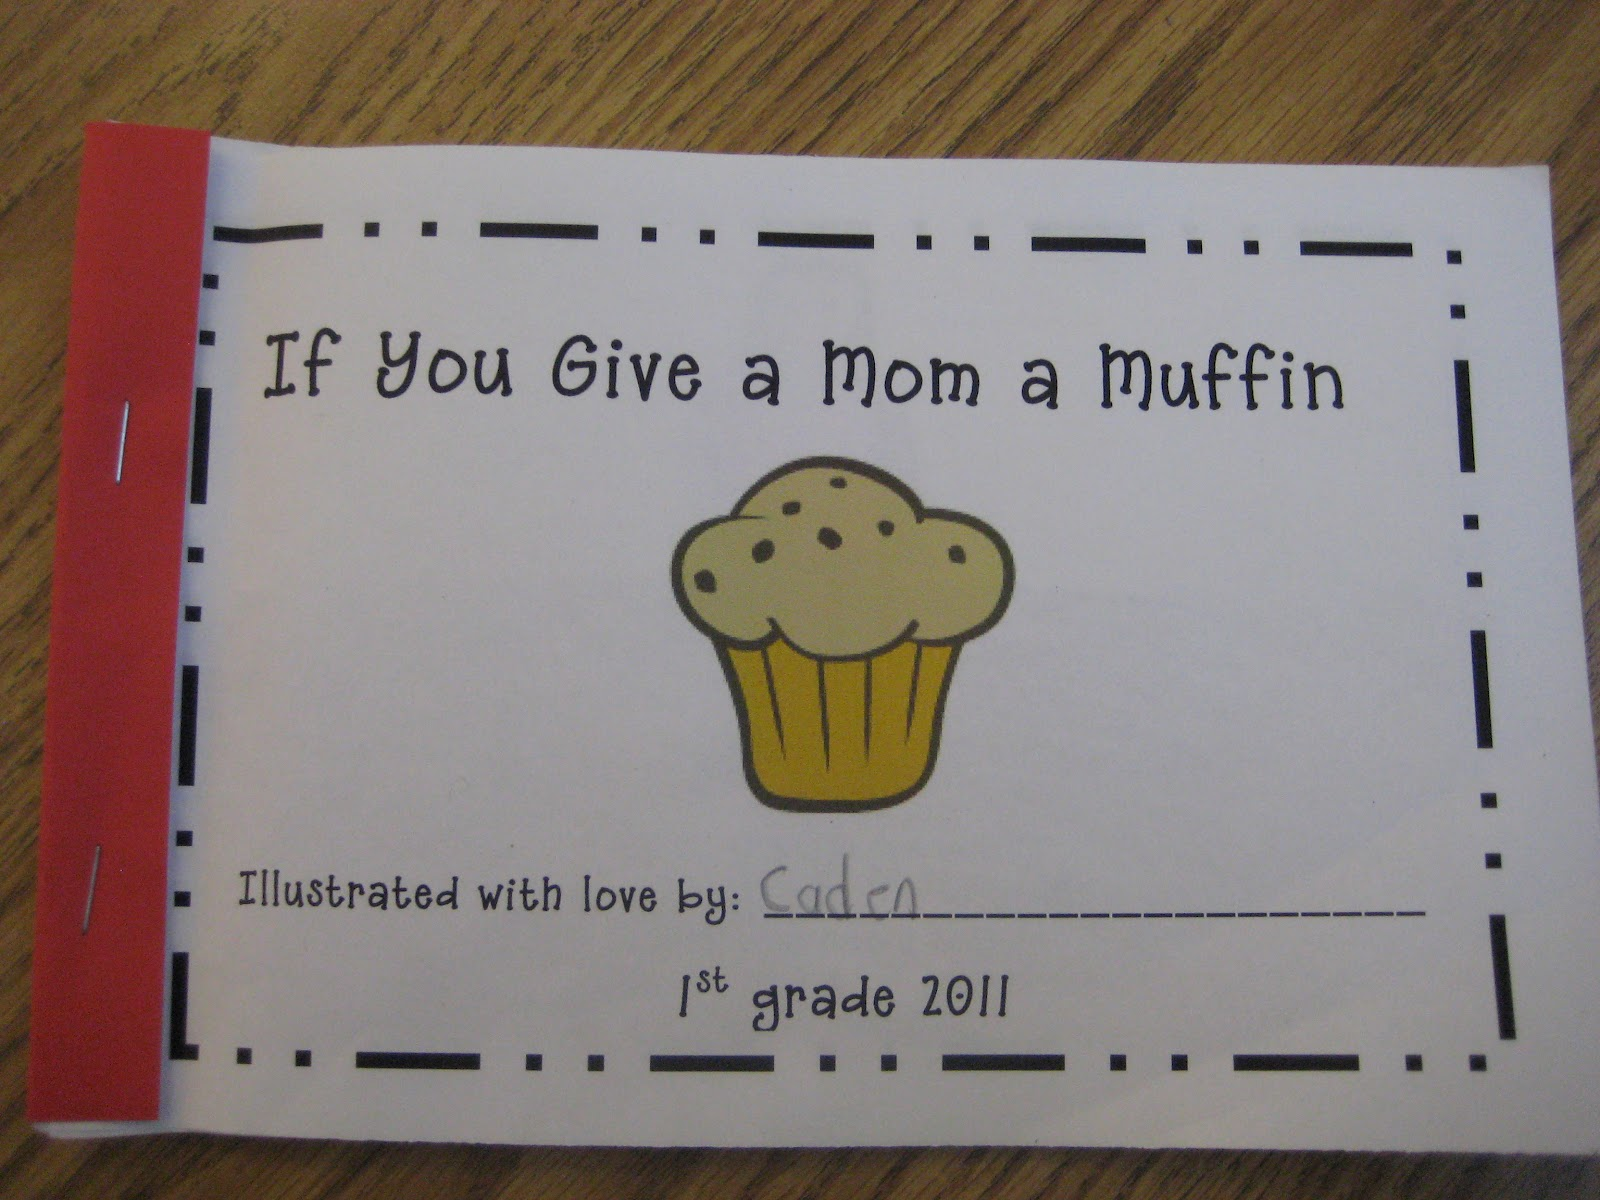 moms and muffins poems | just b.CAUSE